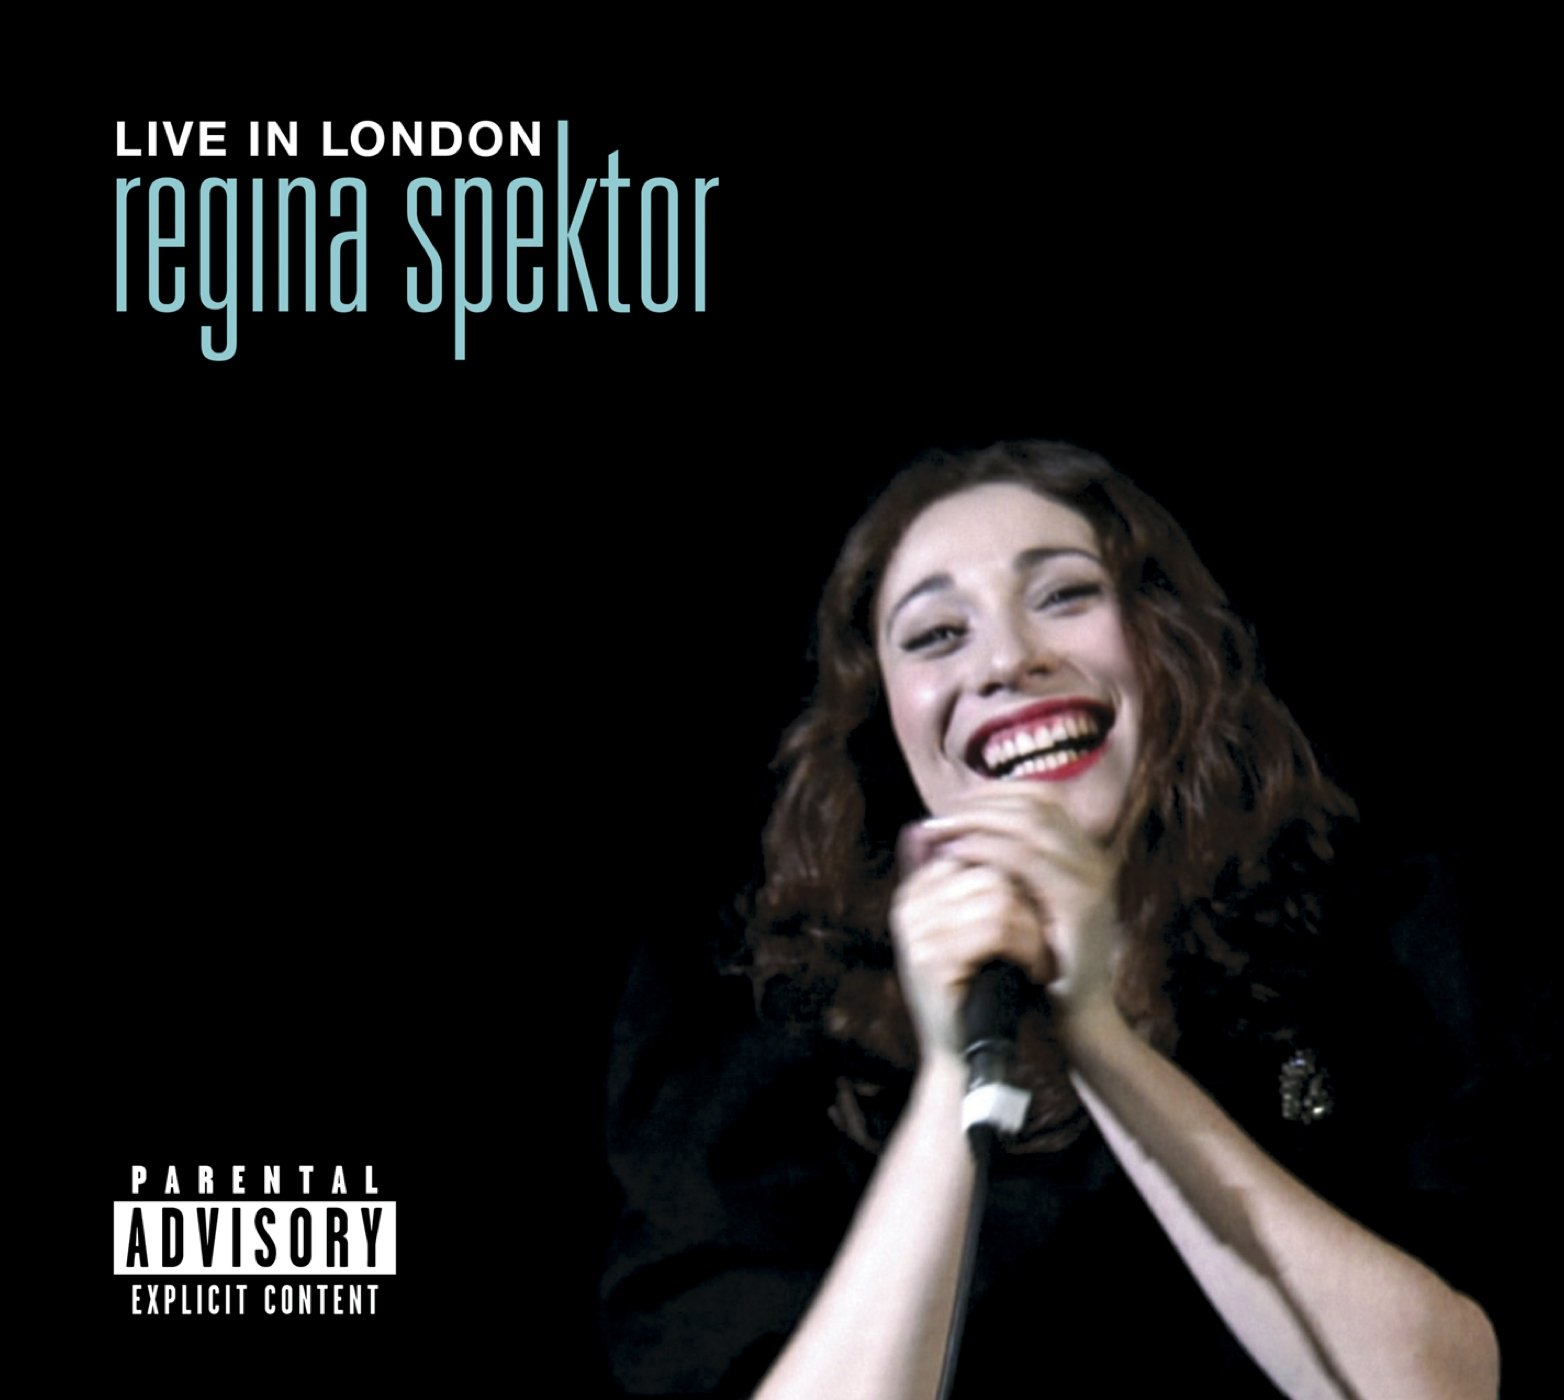 Live In London (CD/DVD) by Sire